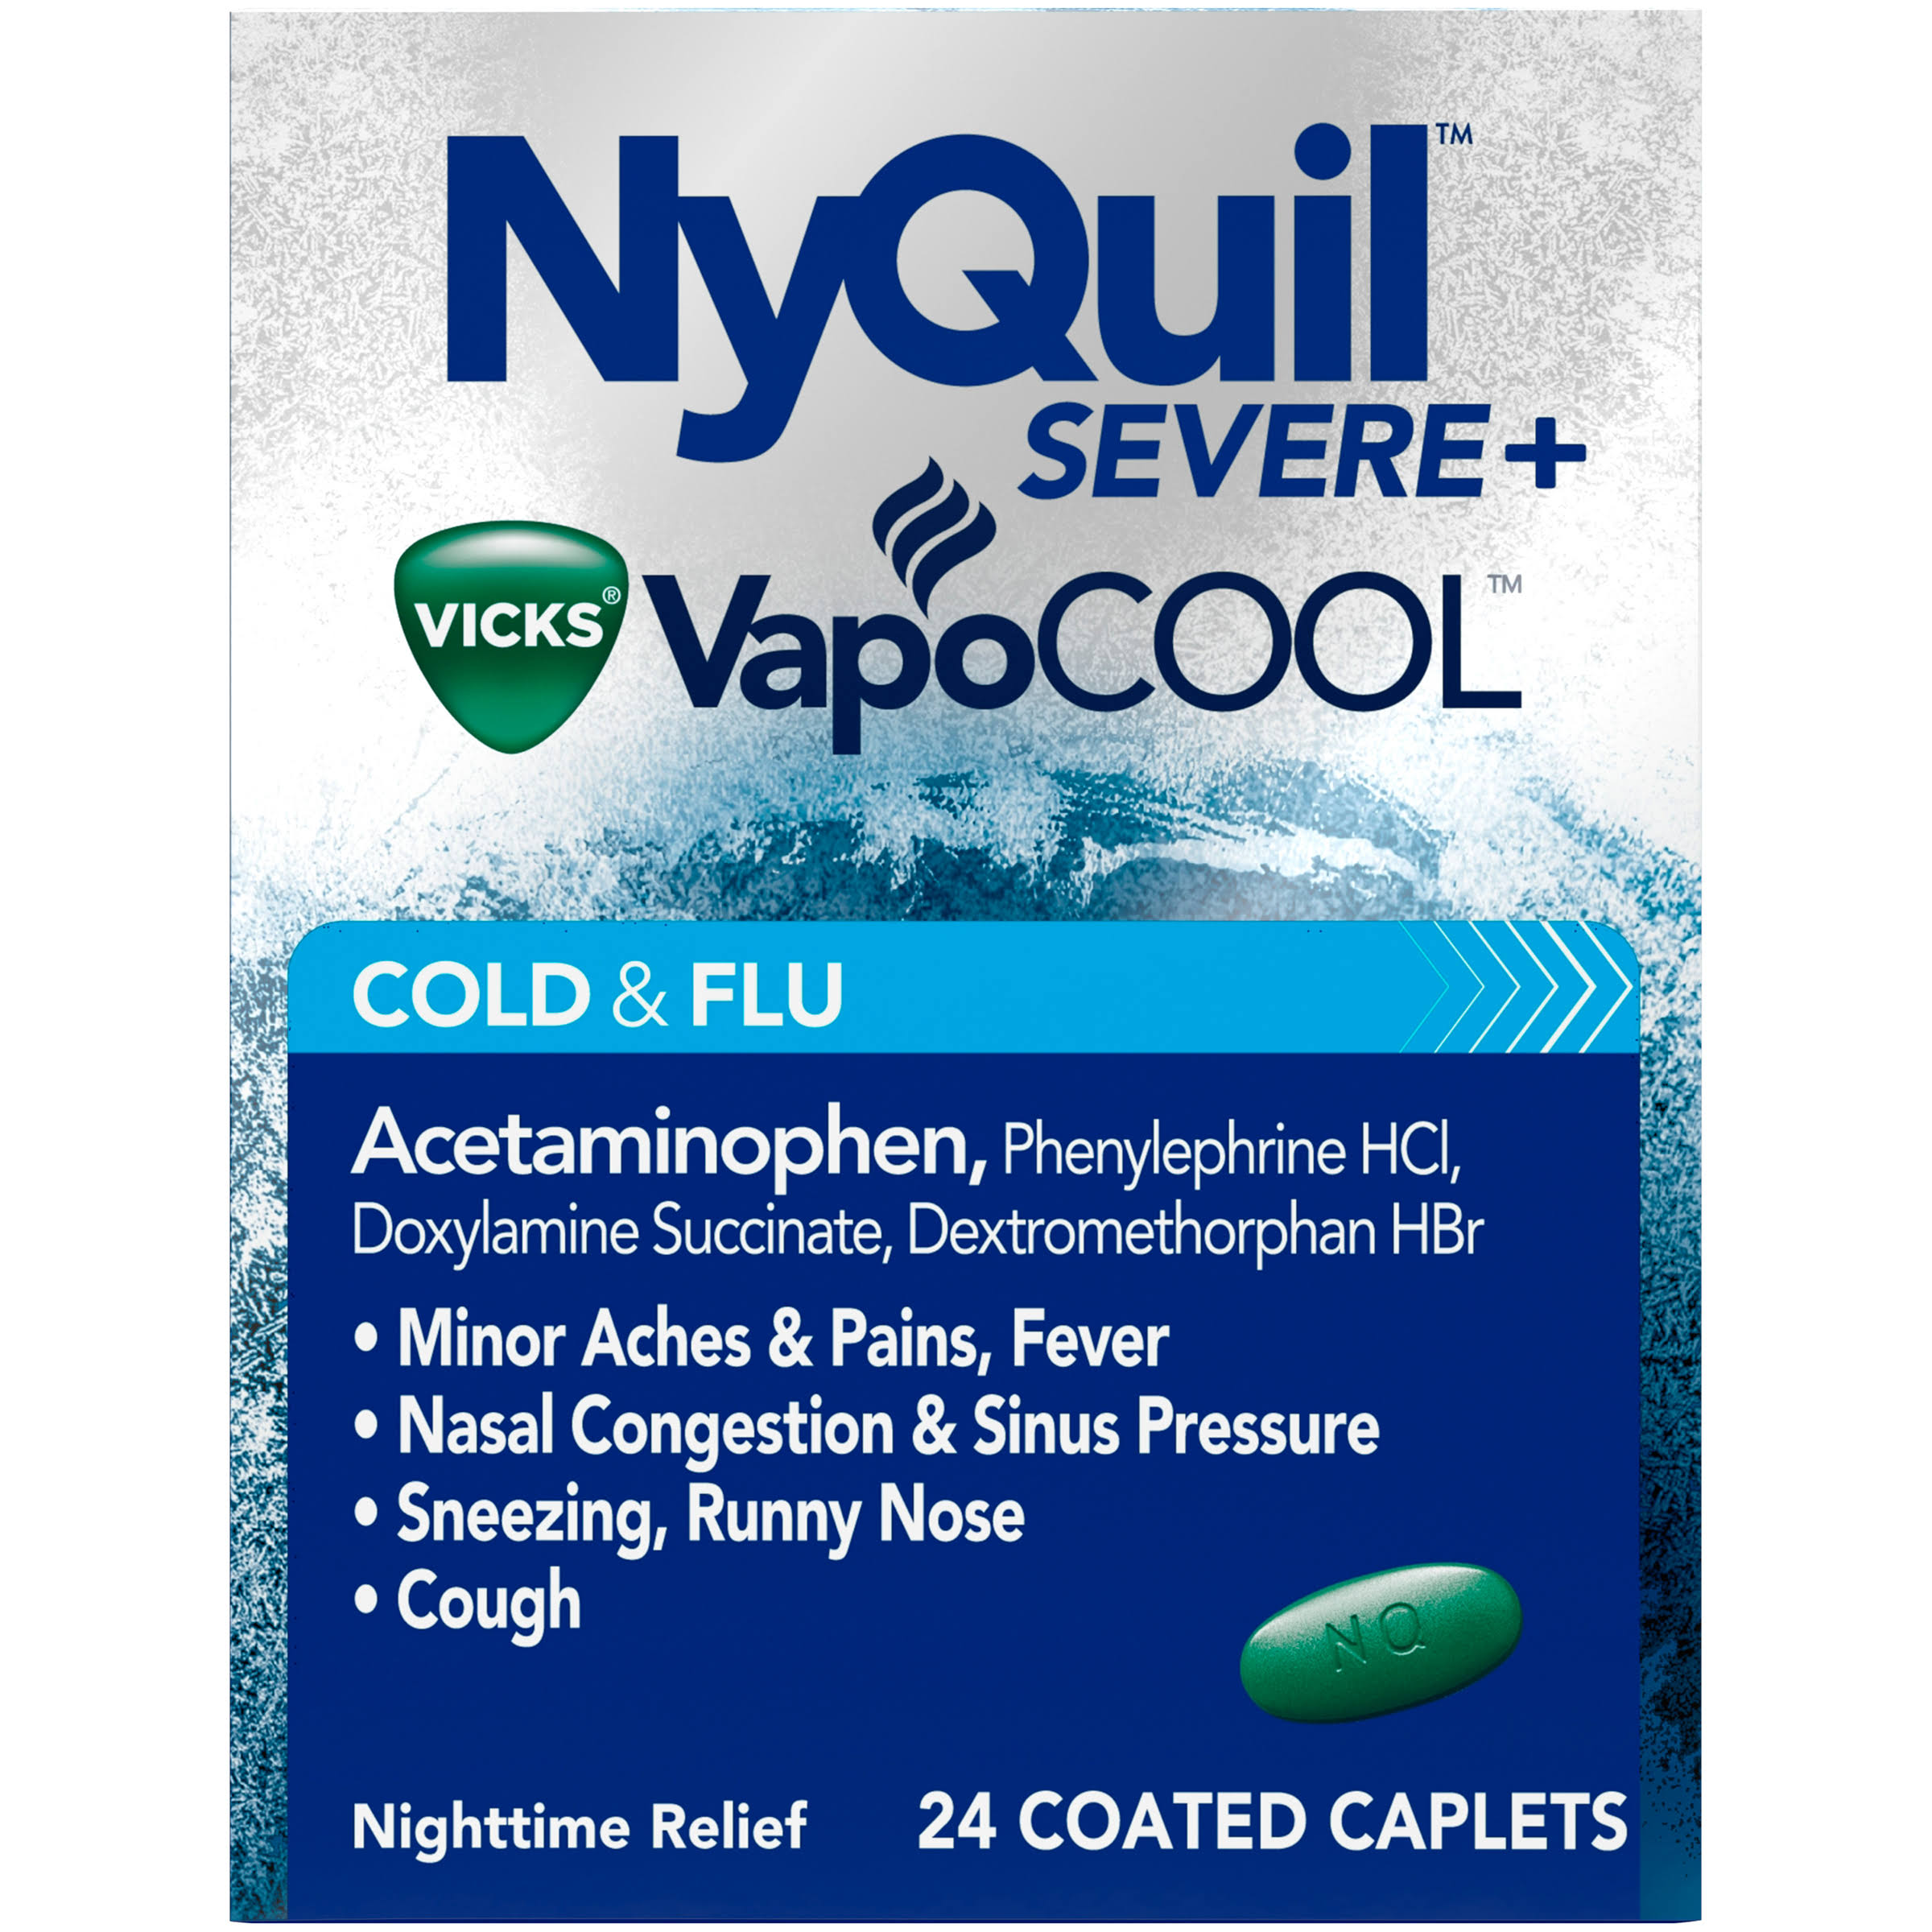 Vicks NyQuil Severe Cold & Flu Night Time Relief - 24ct